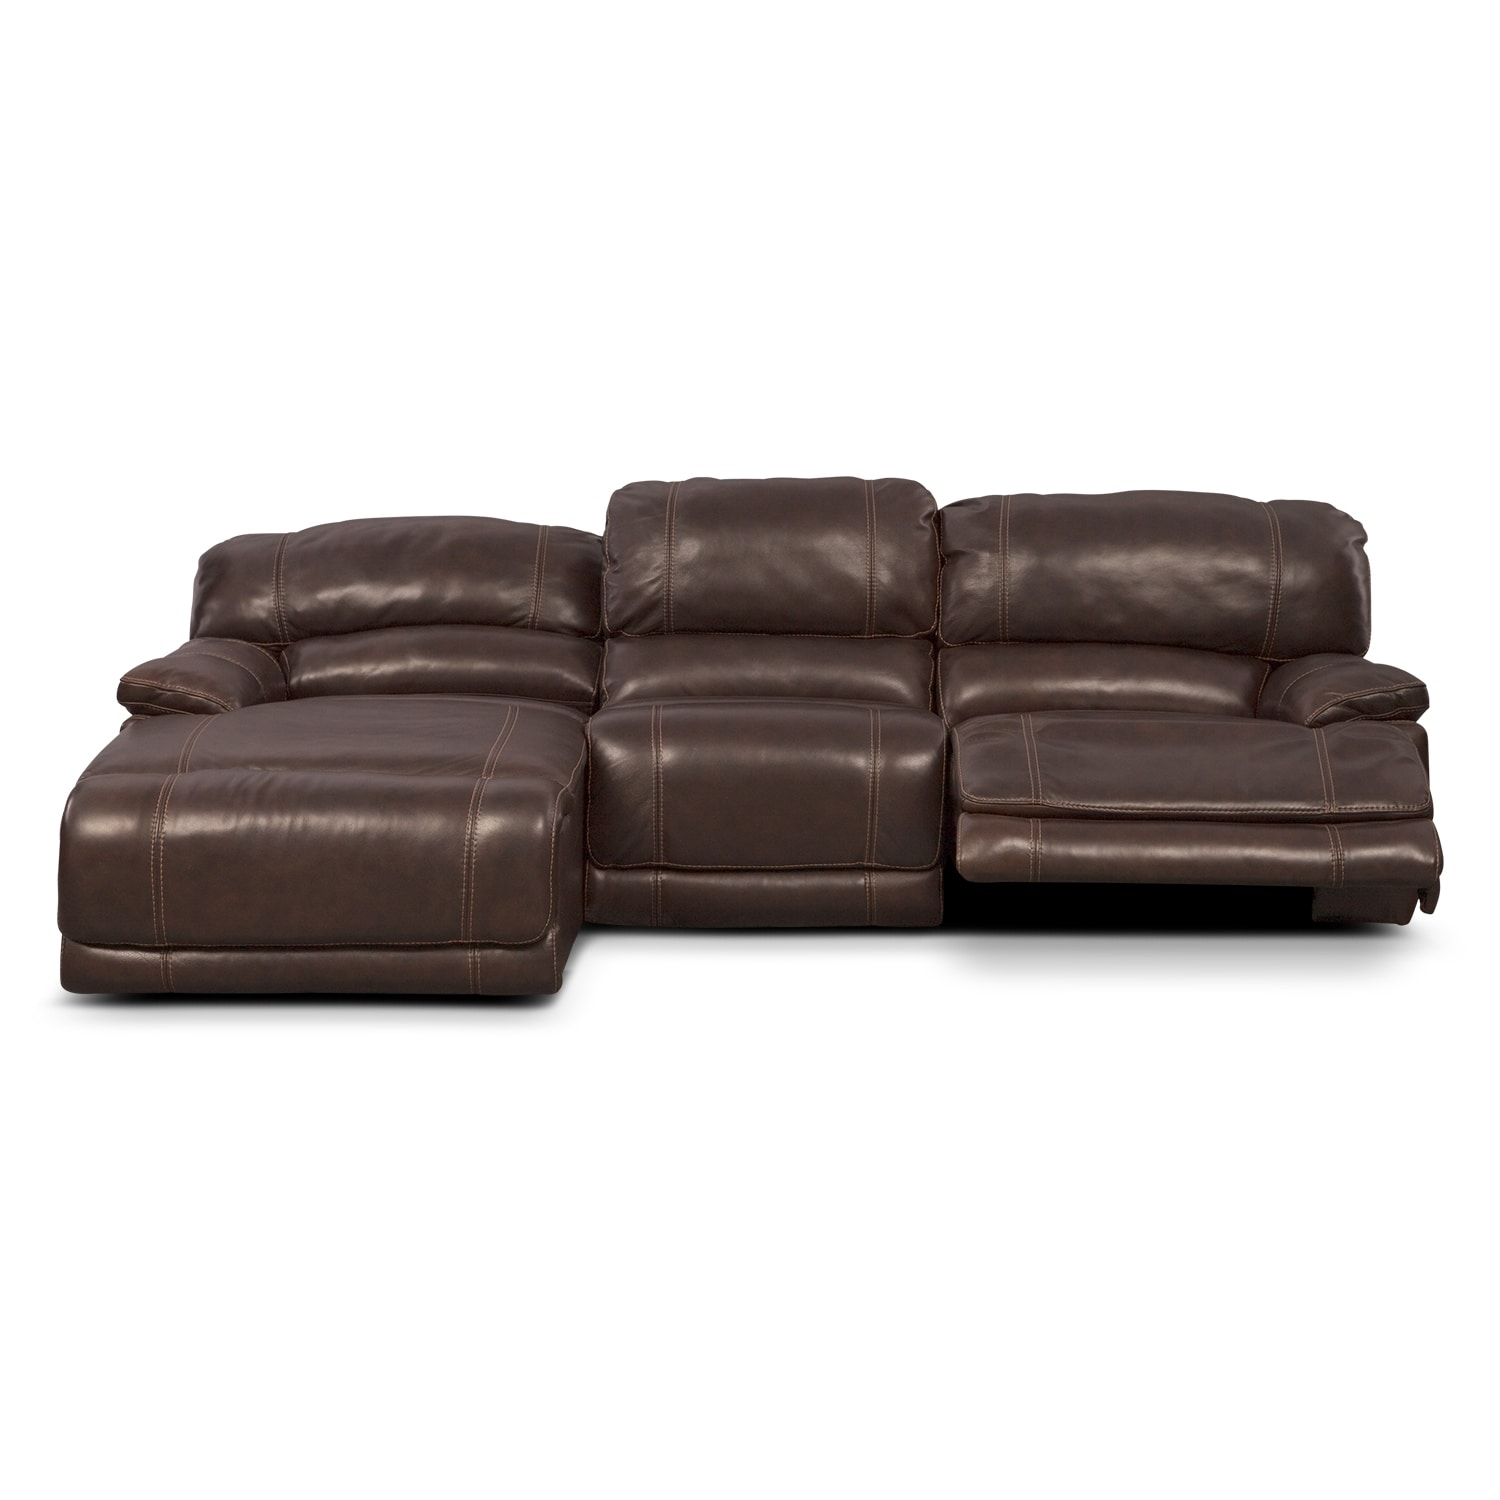 St malo 3 piece power reclining sectional with left for Brown sectional sofa with chaise